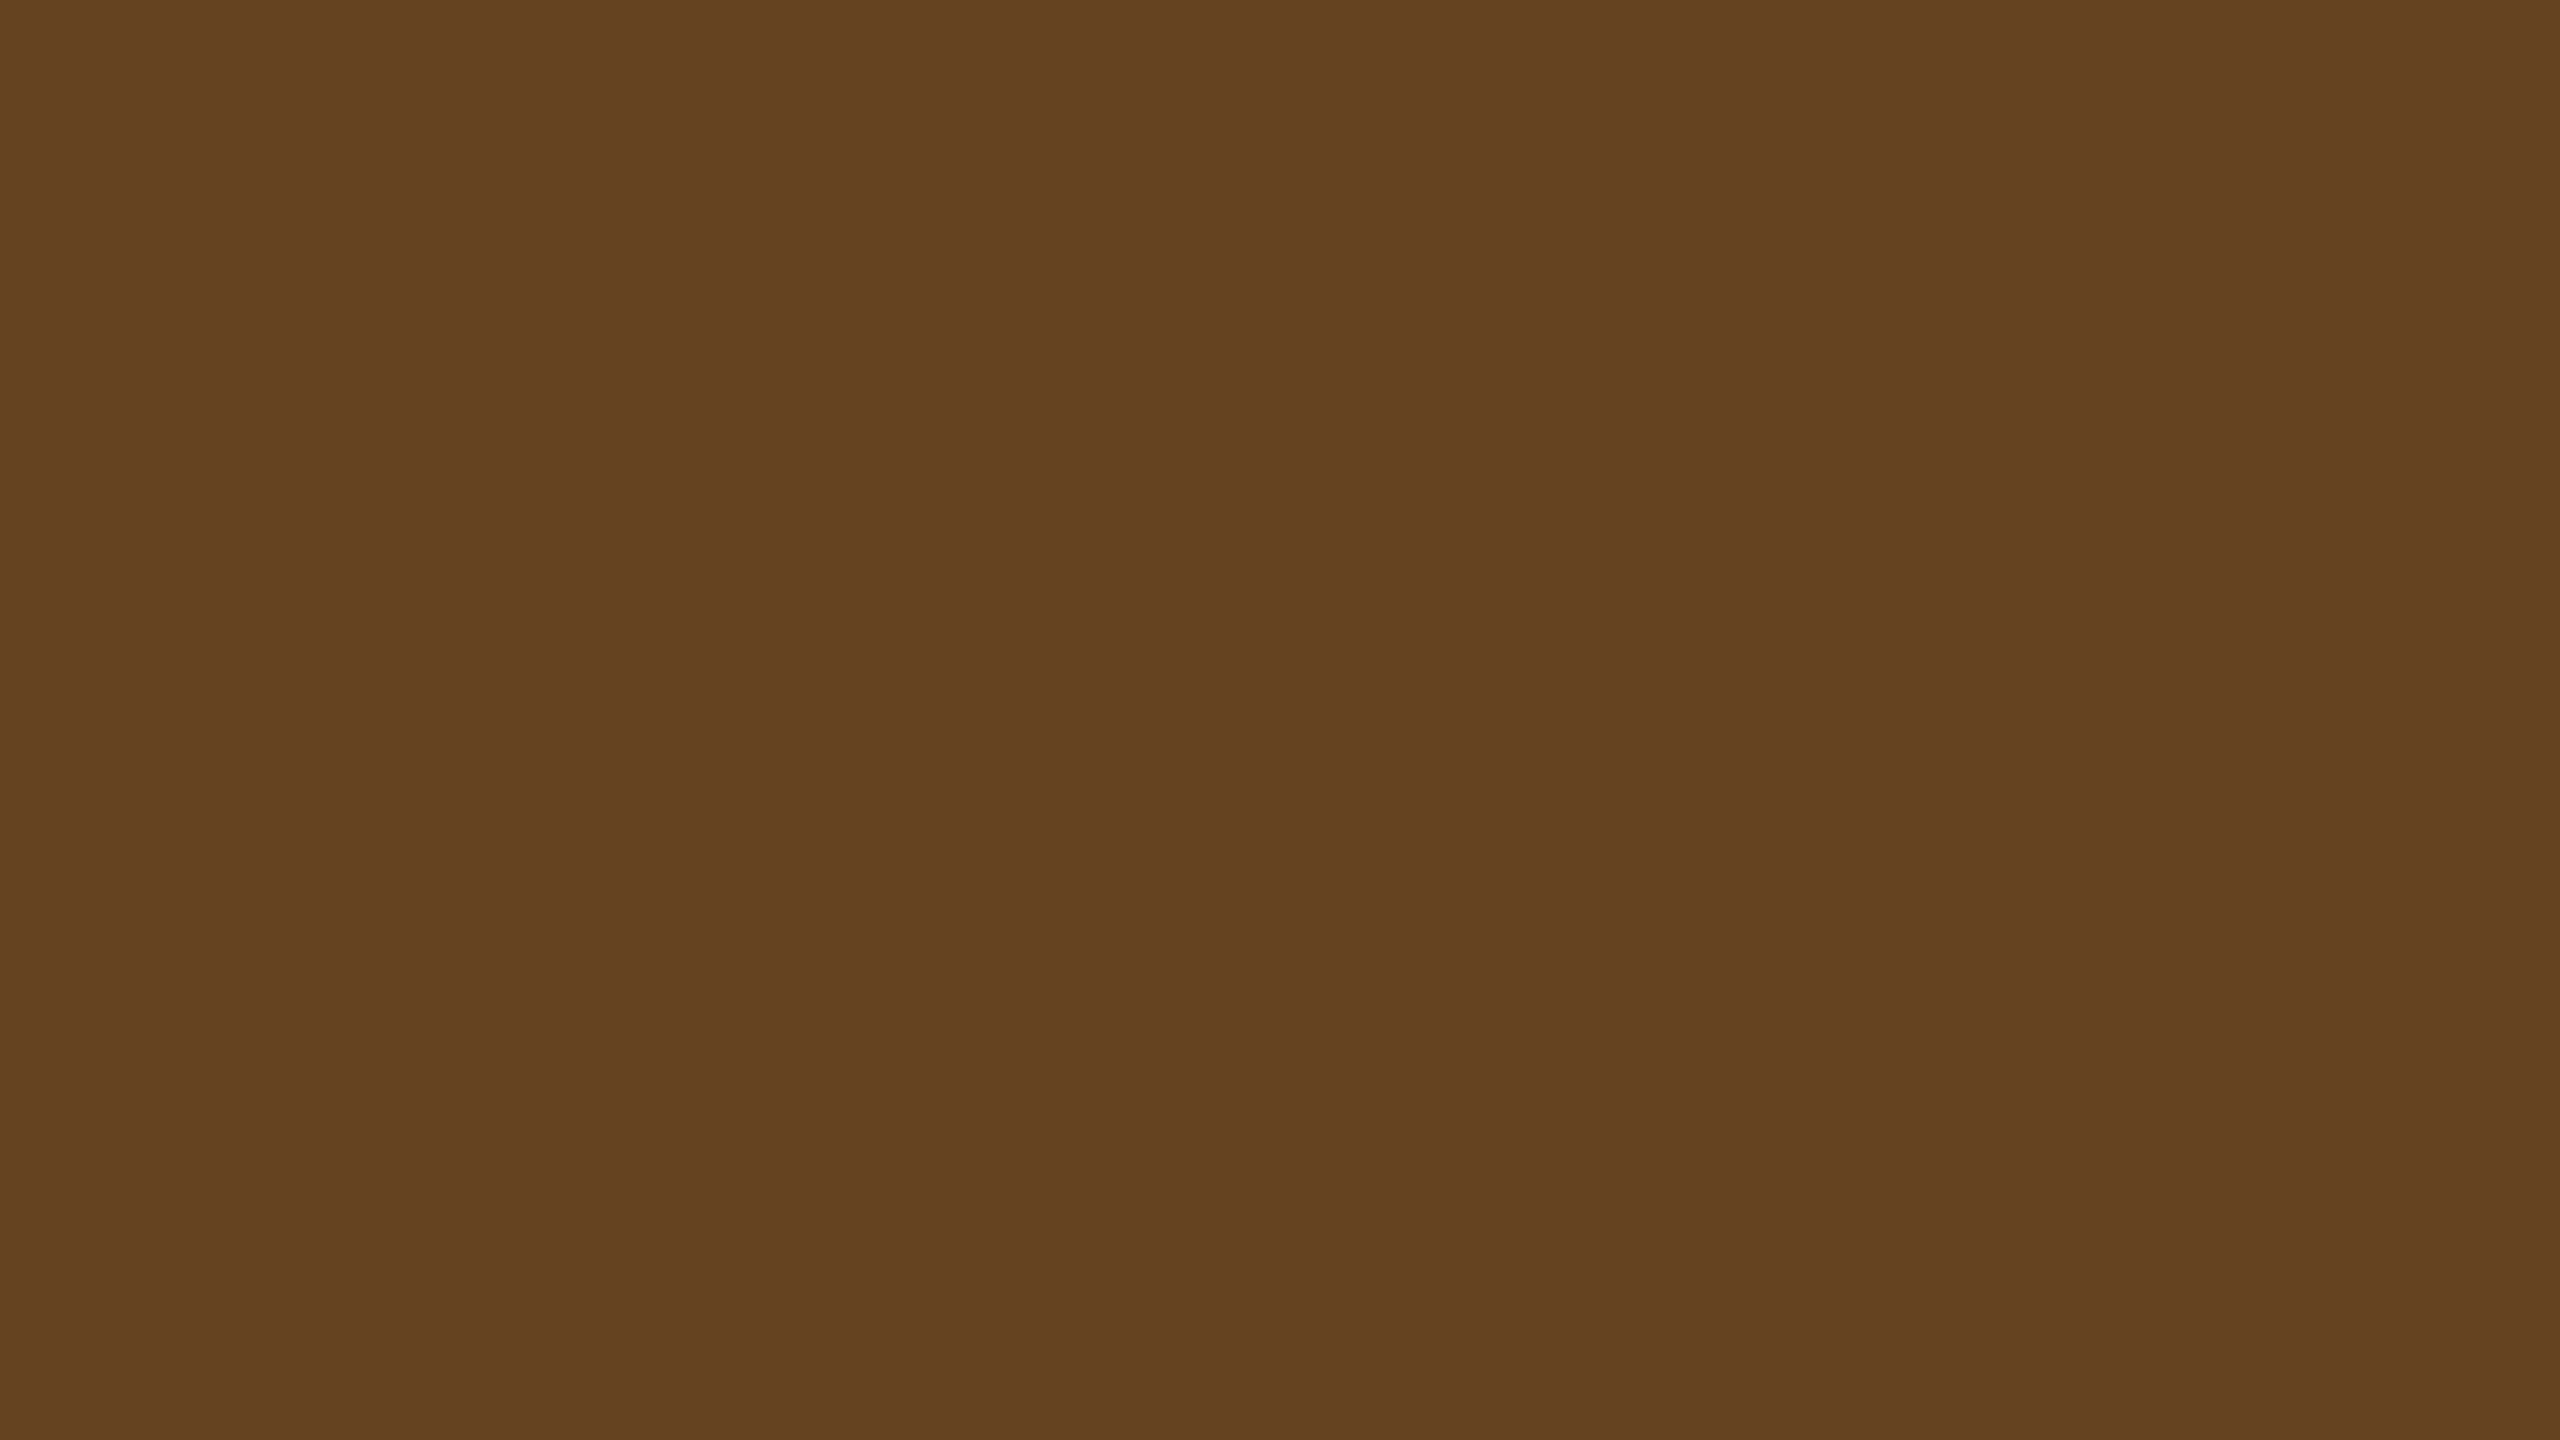 brown colour wallpaper - photo #4